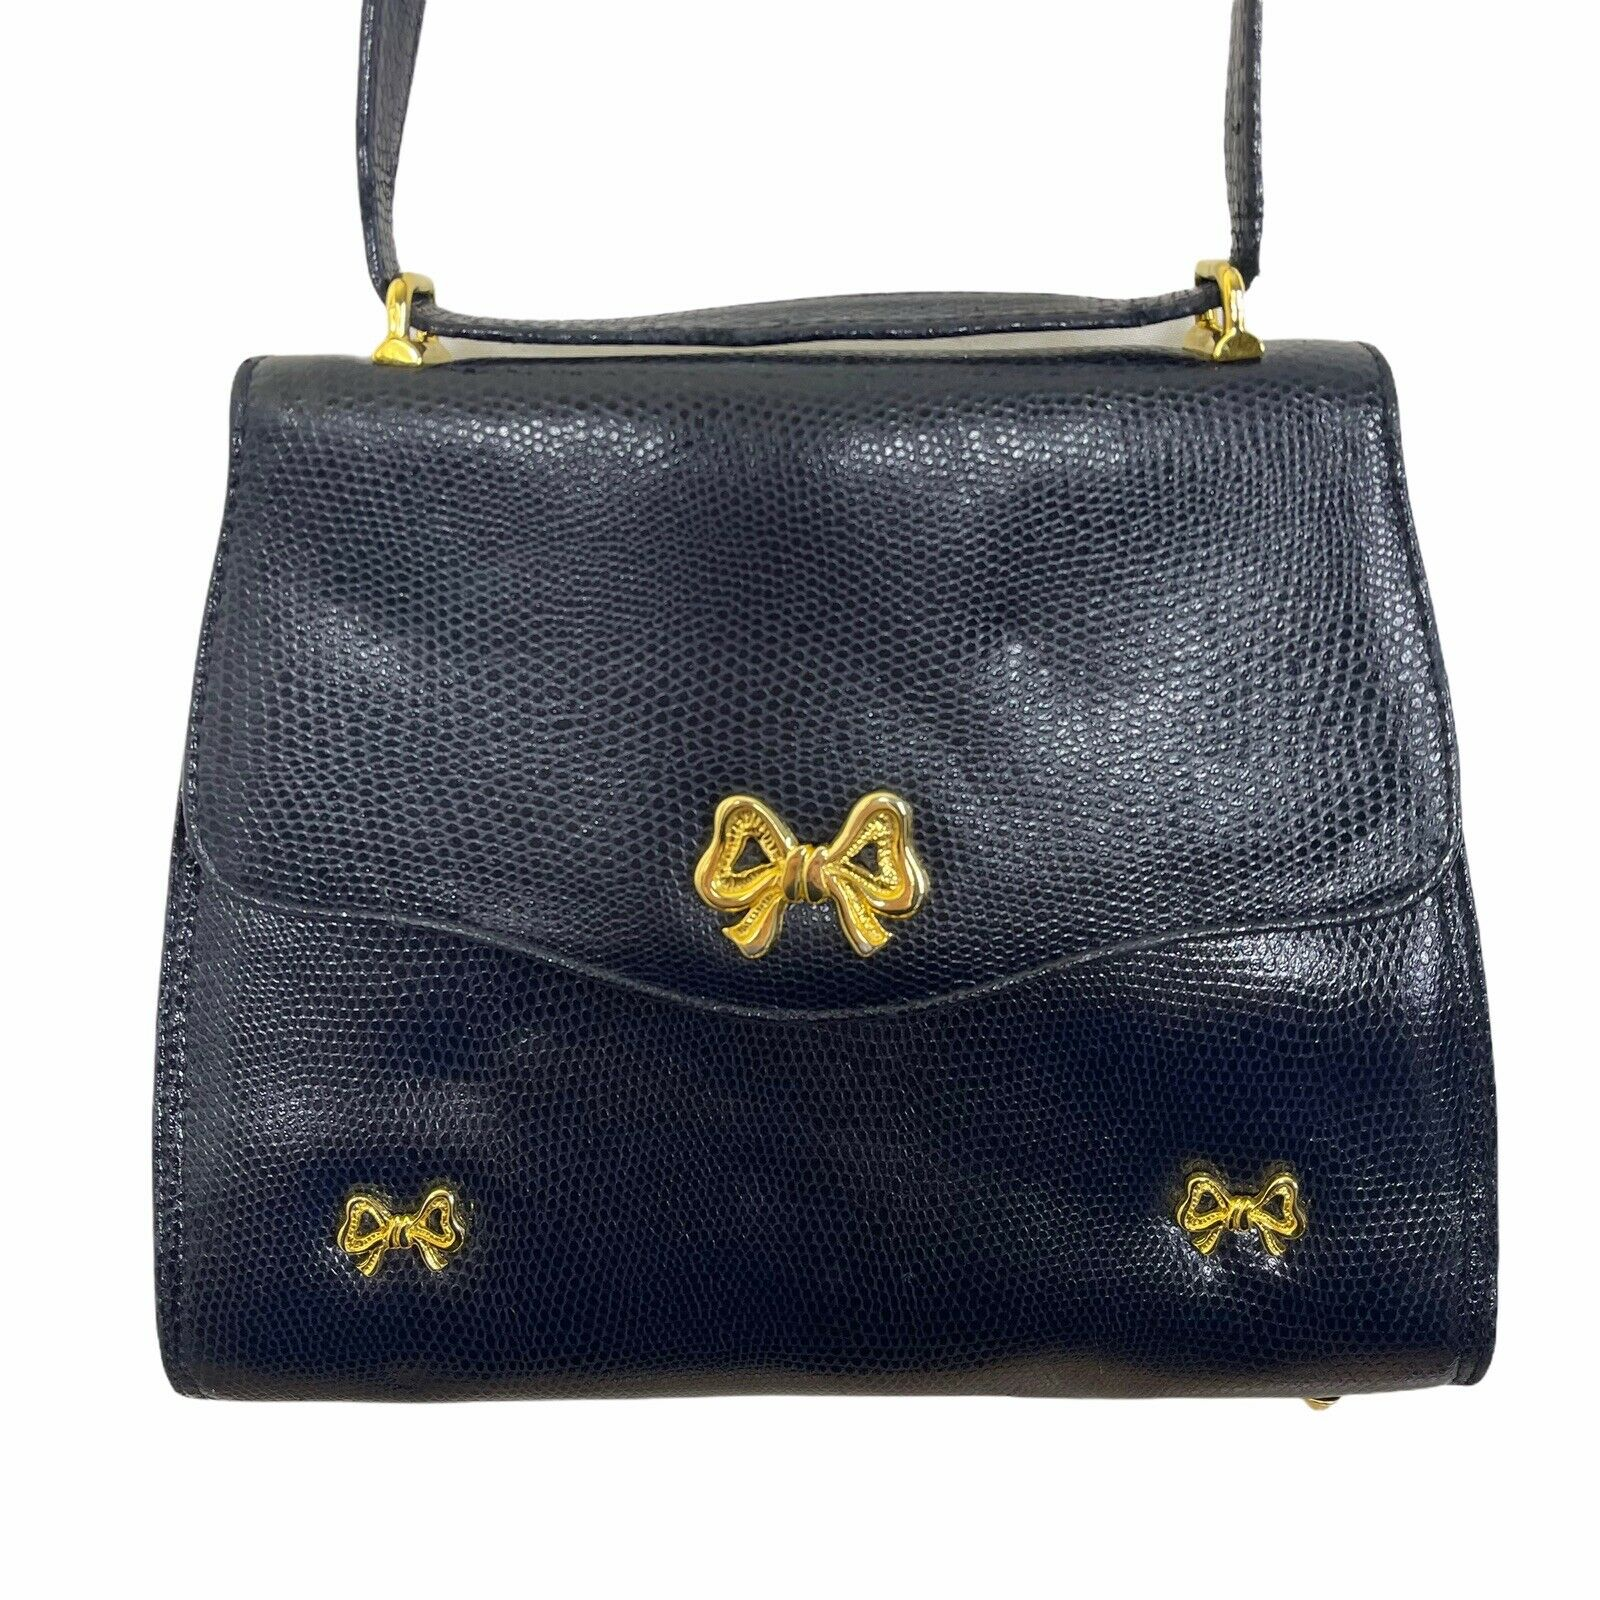 ARNOLD SCAASI NAVY LIZARD LEATHER WITH BOWS WOMEN… - image 5